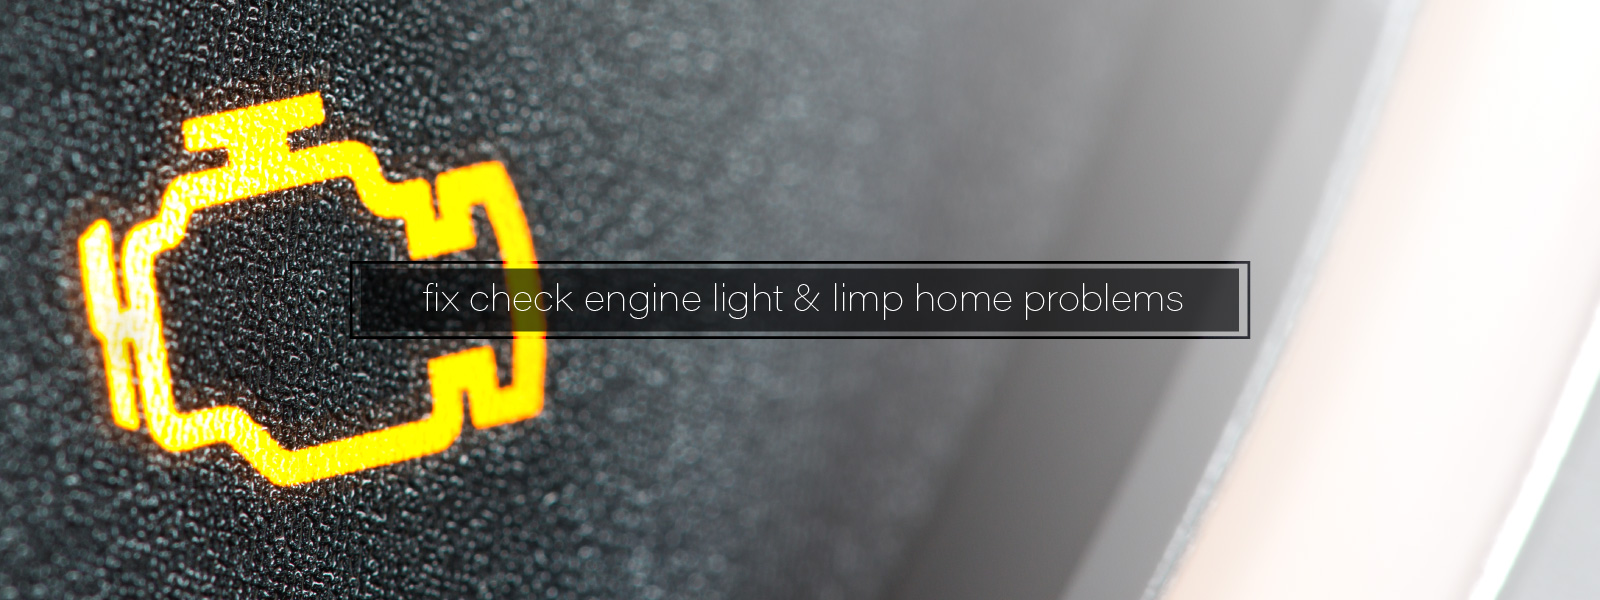 Fix Check Engine Light & Limp Home Problems